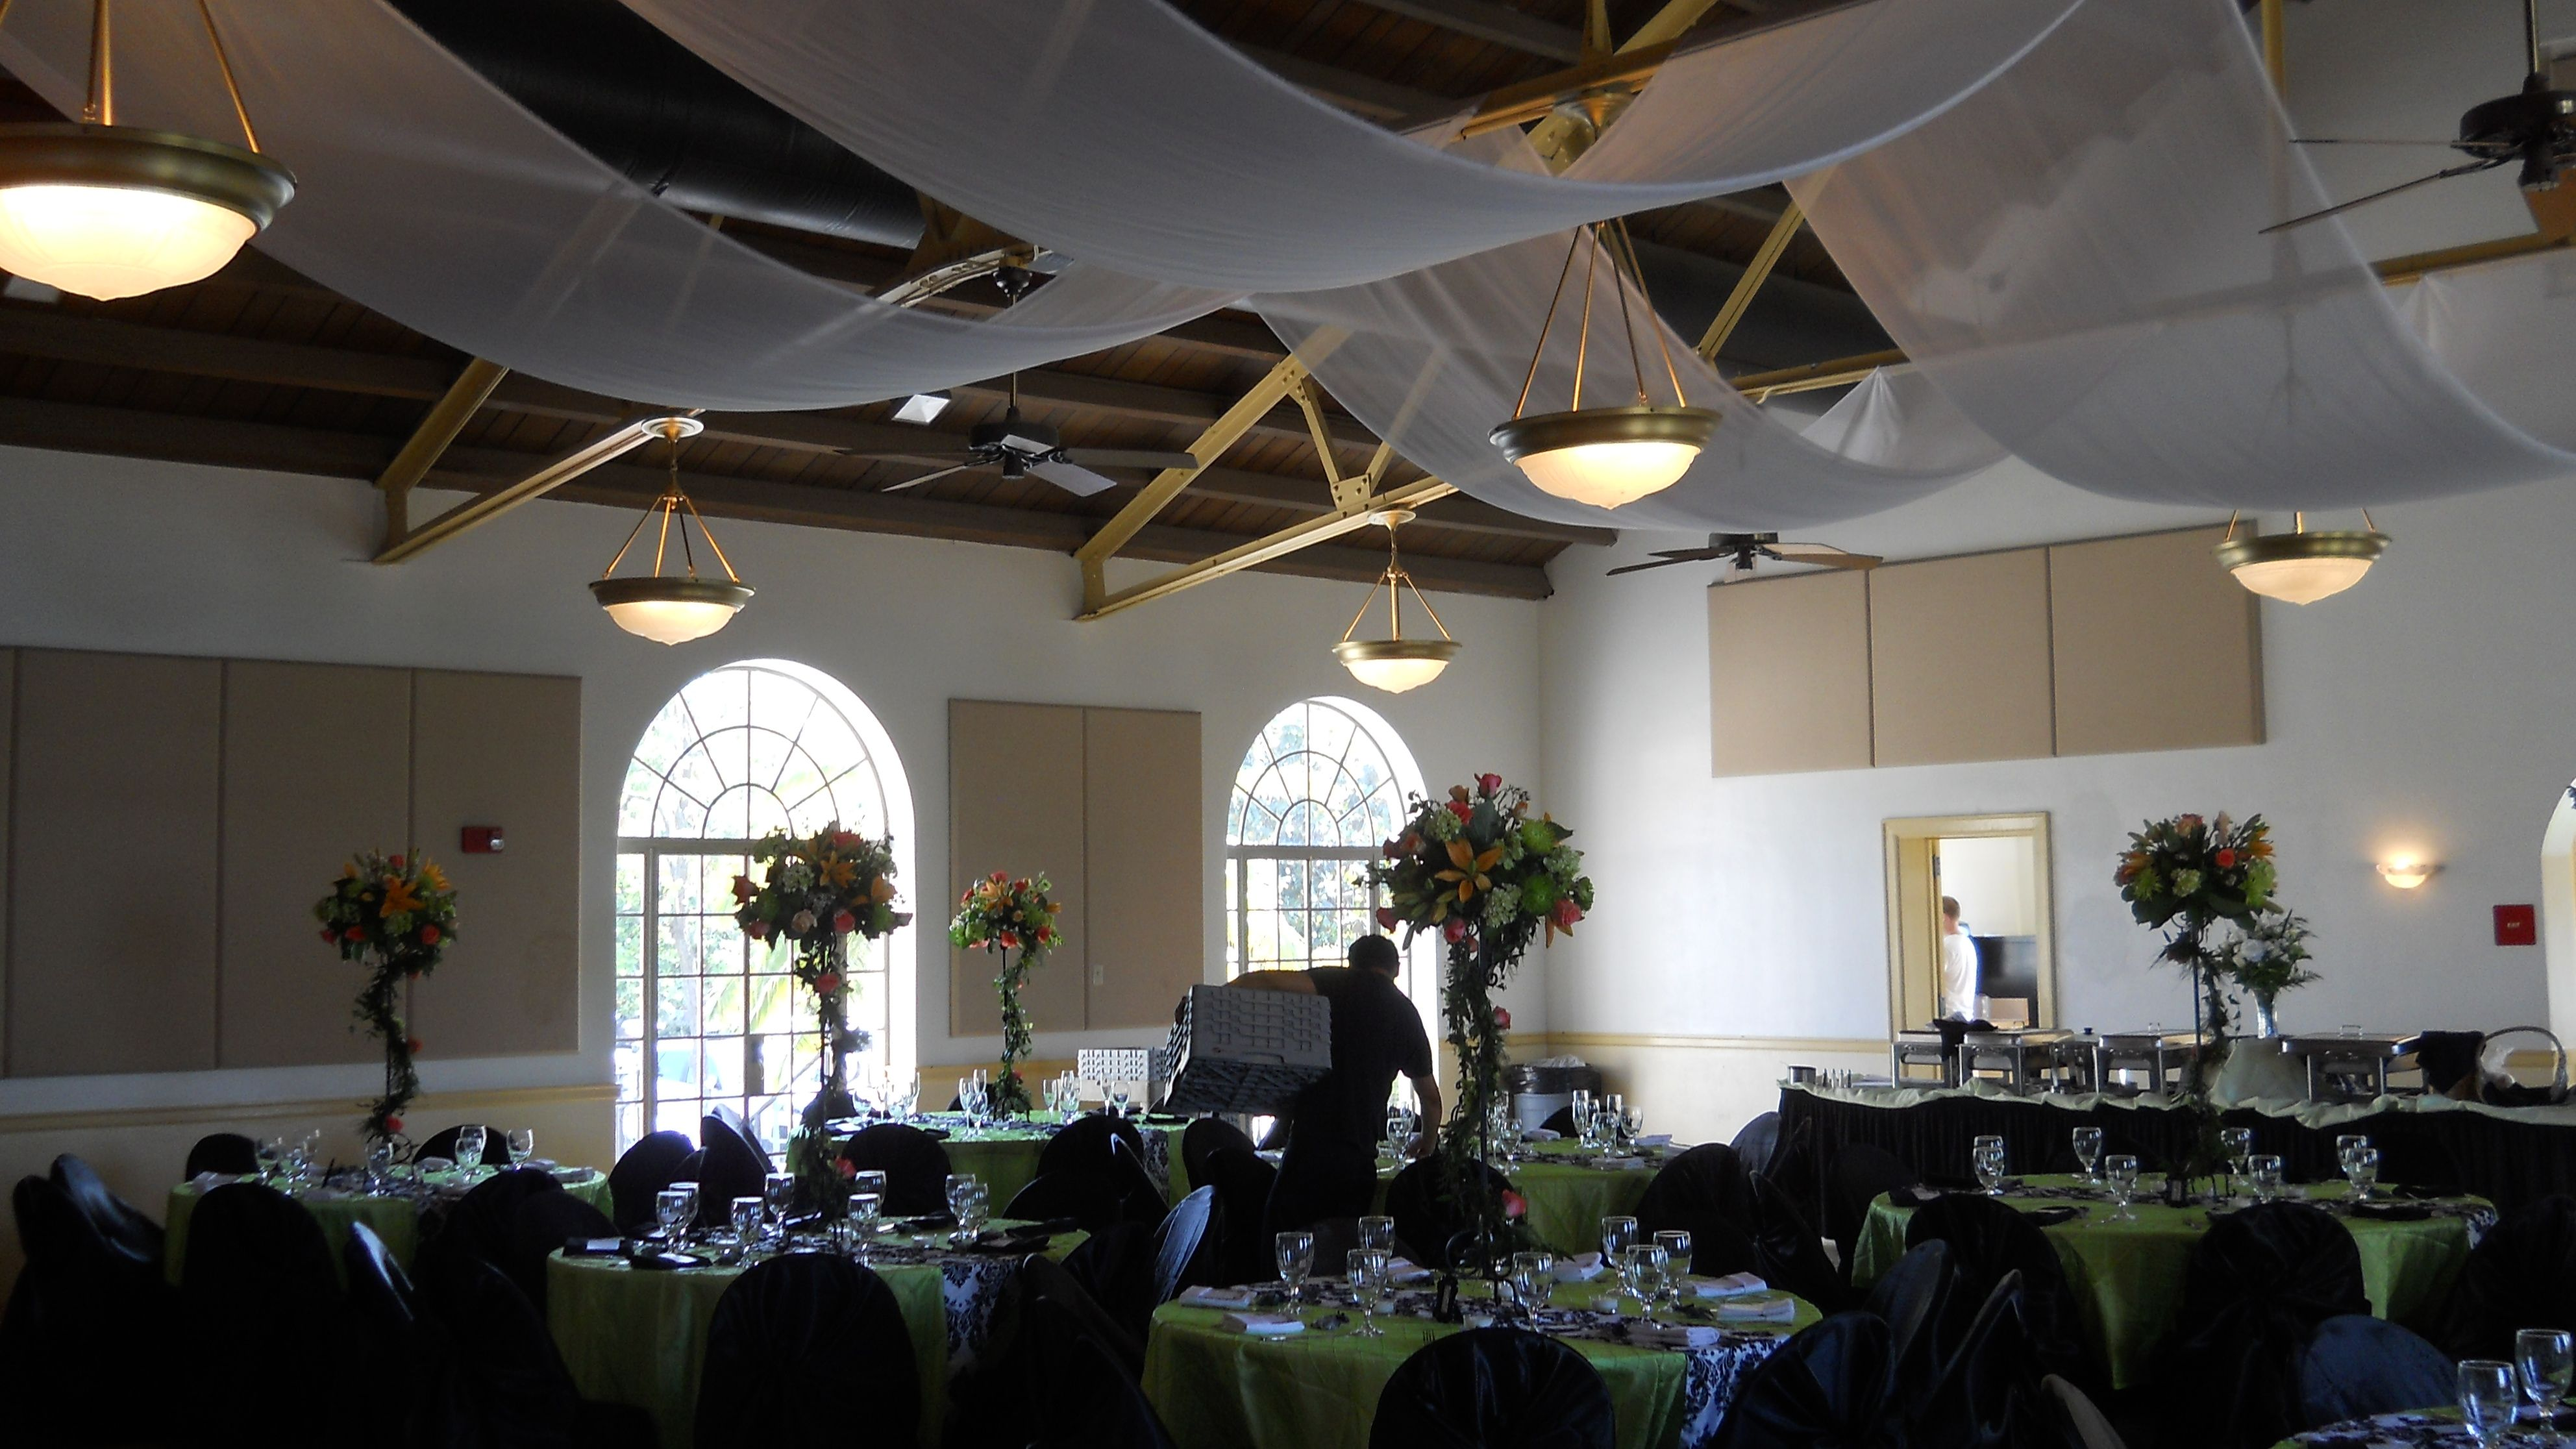 Magnolia Building Lakeland With Images Ceiling Lights Table